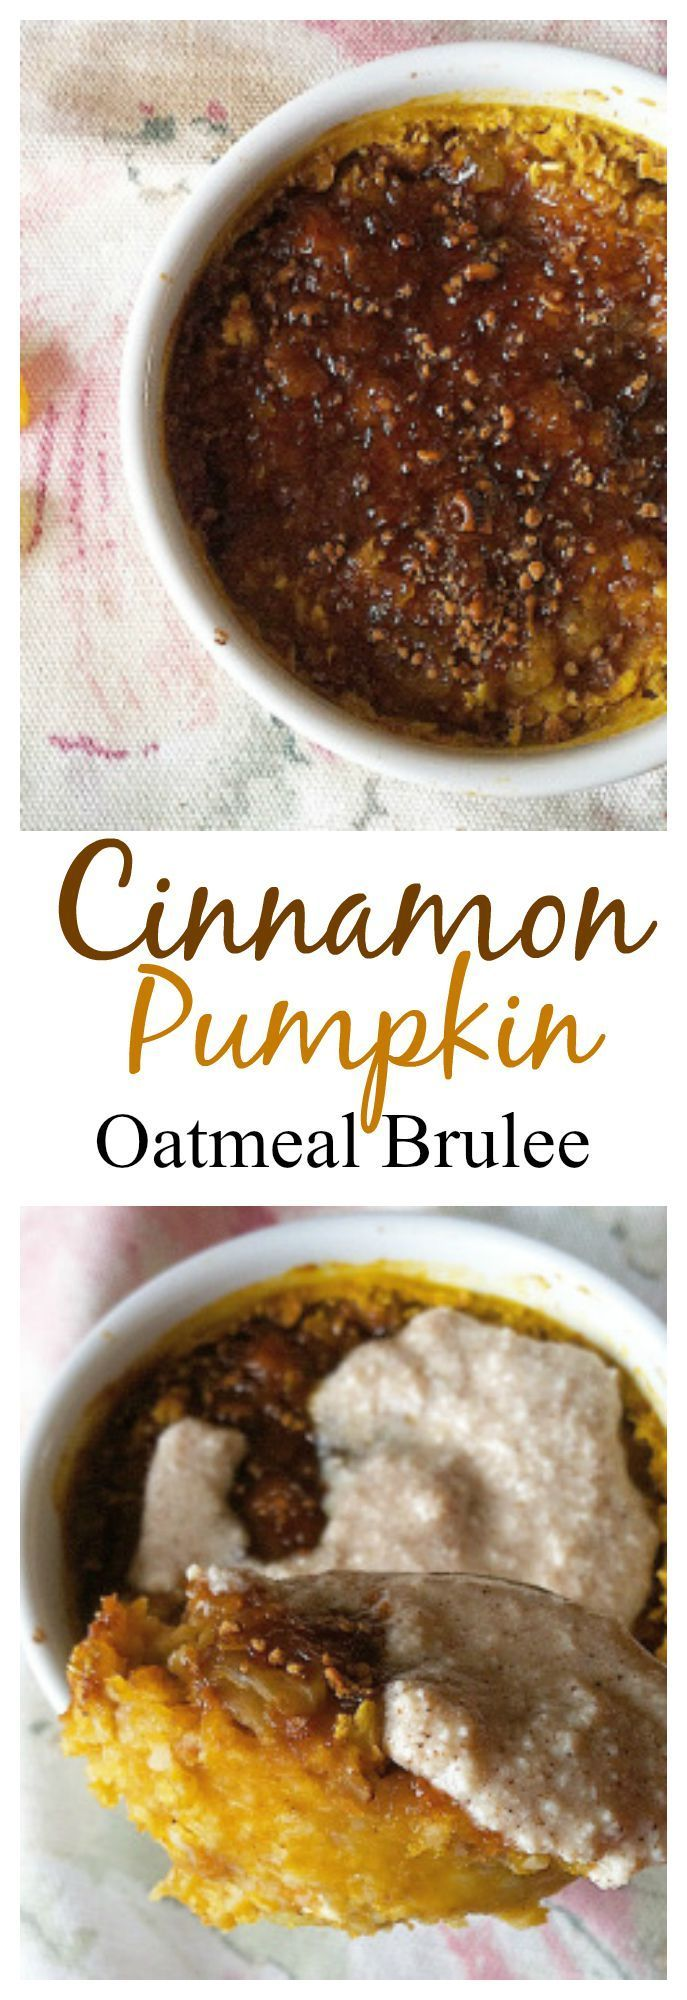 This Cinnamon Pumpkin Oatmeal Brûlée is the perfect #healthy breakfast that tastes like a dessert! #pumpkin #vegan